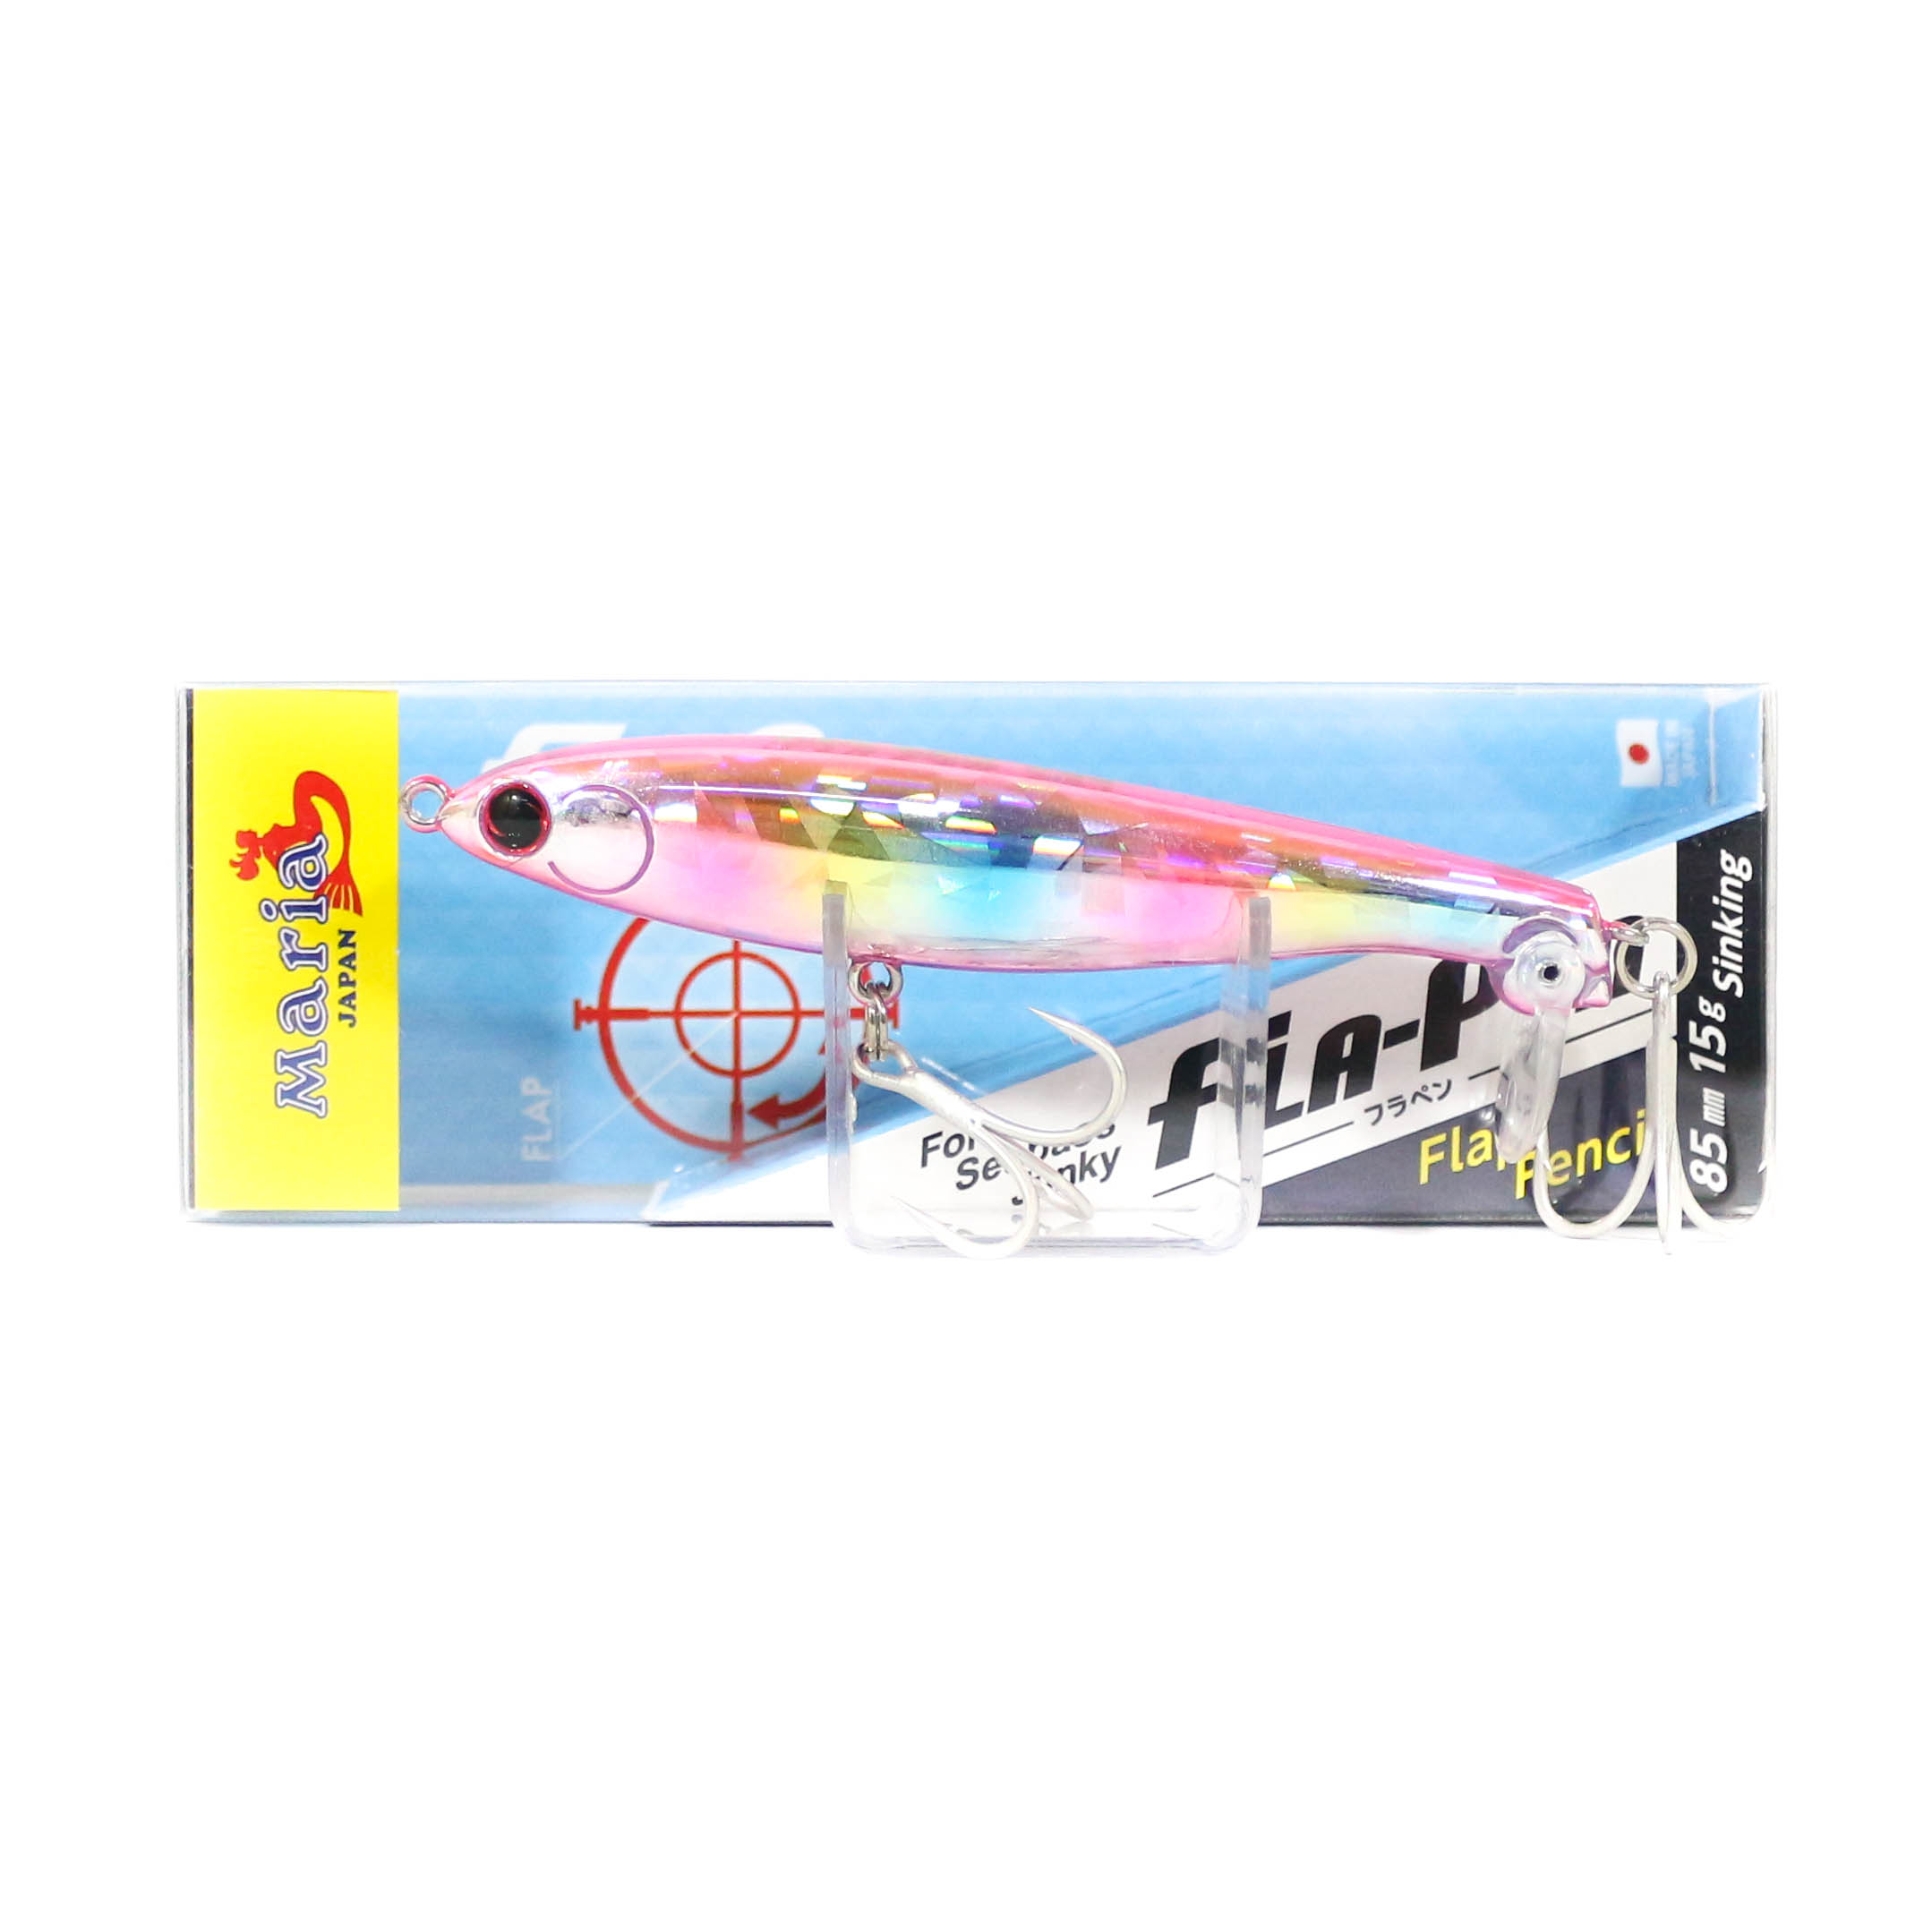 Maria Fla Pen S85 Fluttering Pencil Sinking Lure 10H (1648)